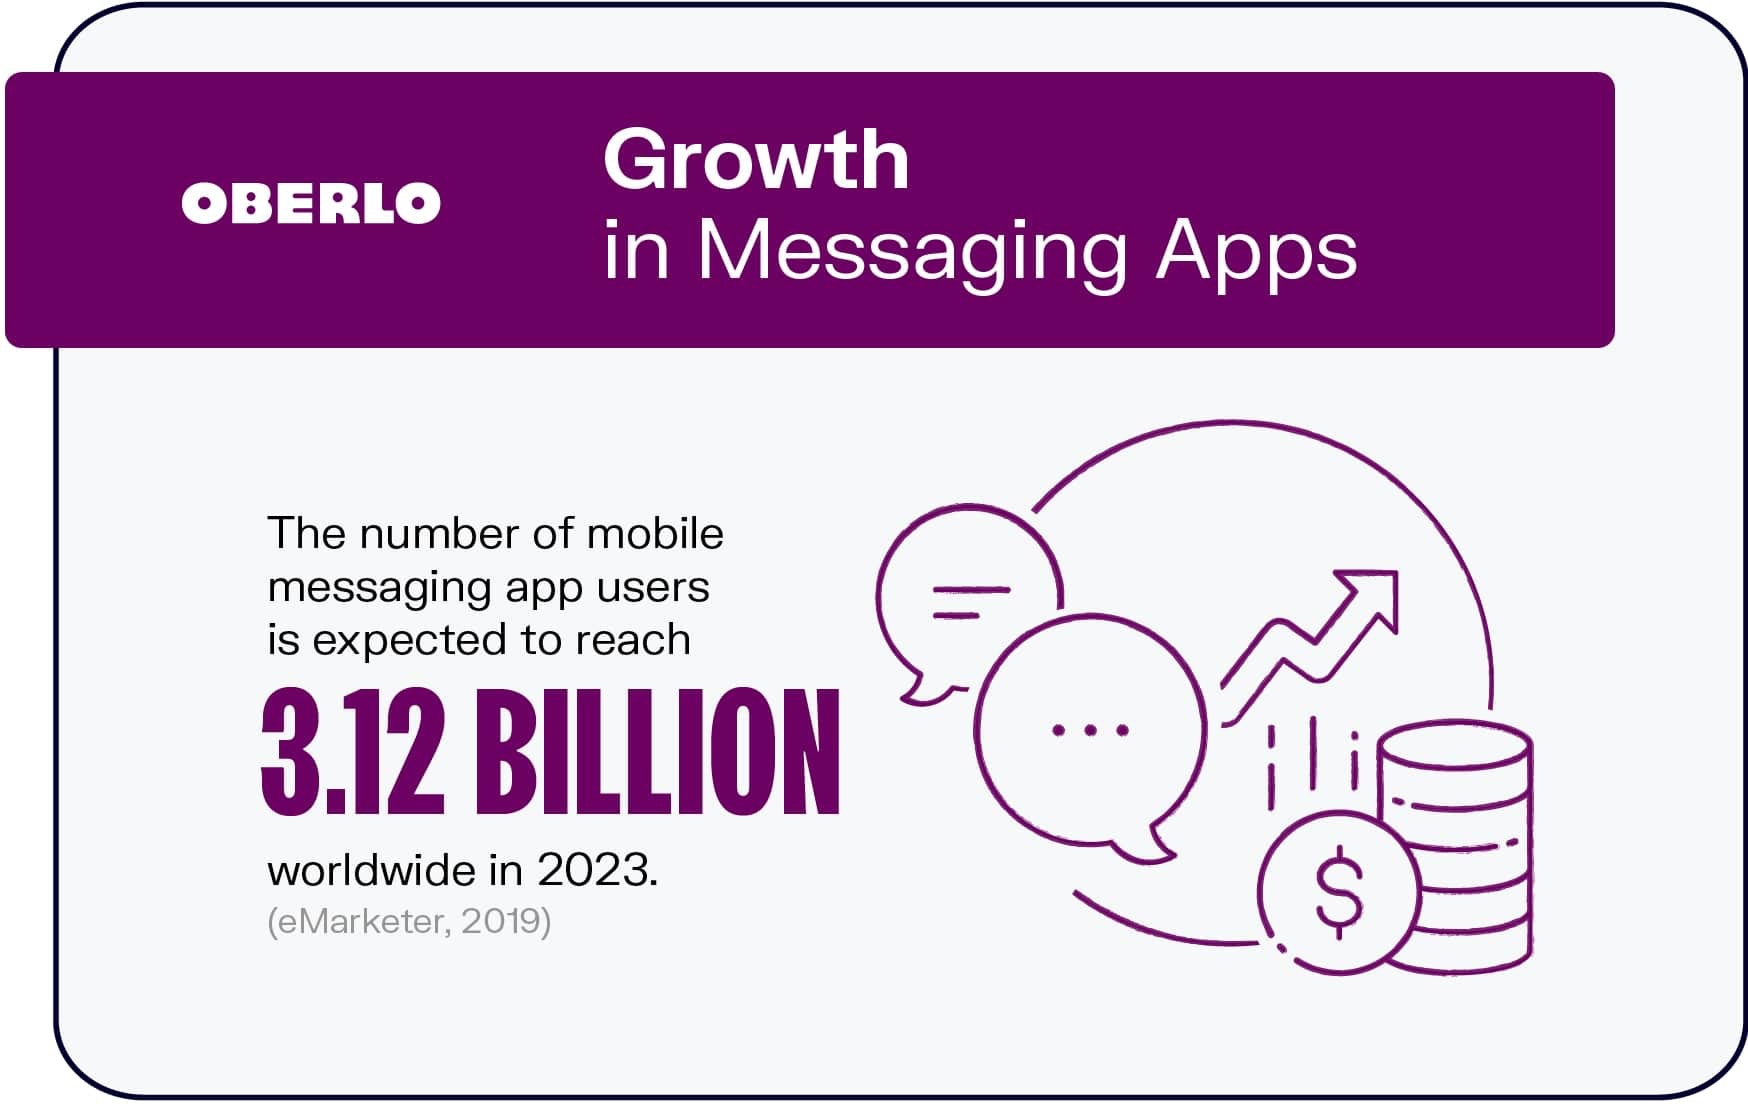 Growth in Messaging Apps